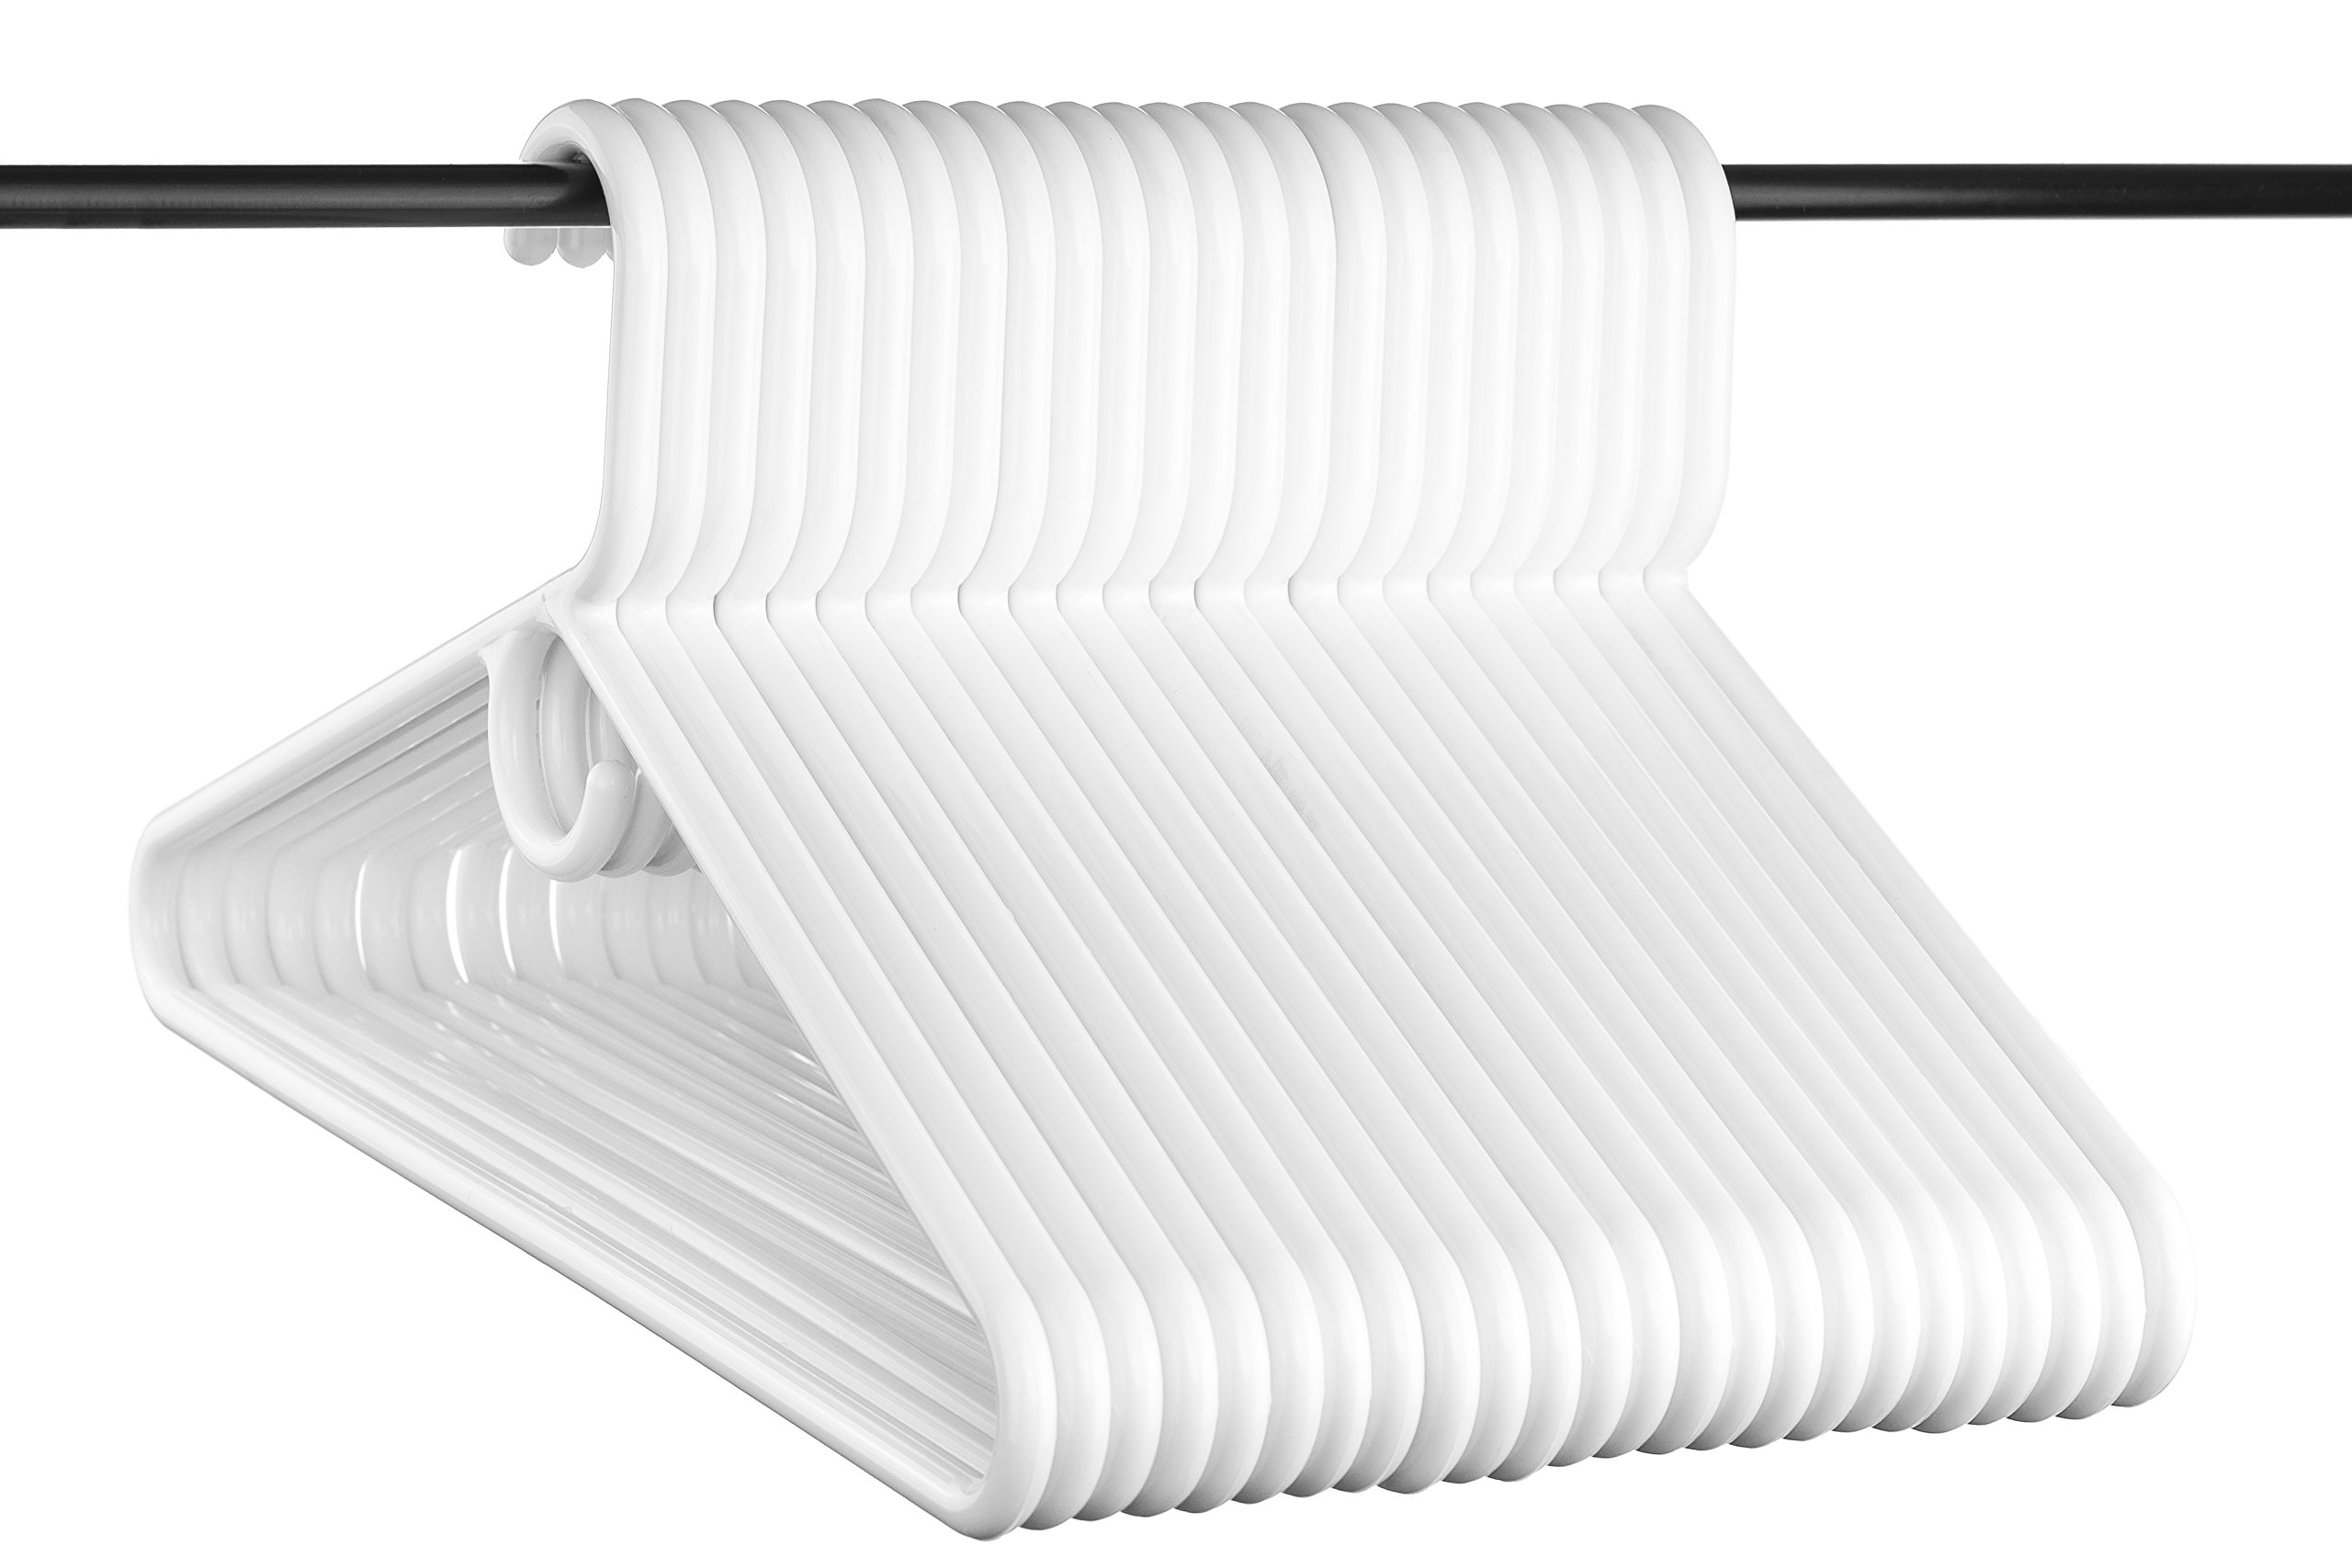 Neaties American Made White Heavy Duty Plastic Hangers, Plastic Clothes Hangers Ideal for Everyday Use, Clothing Standard Hangers, 24pk by Neaties